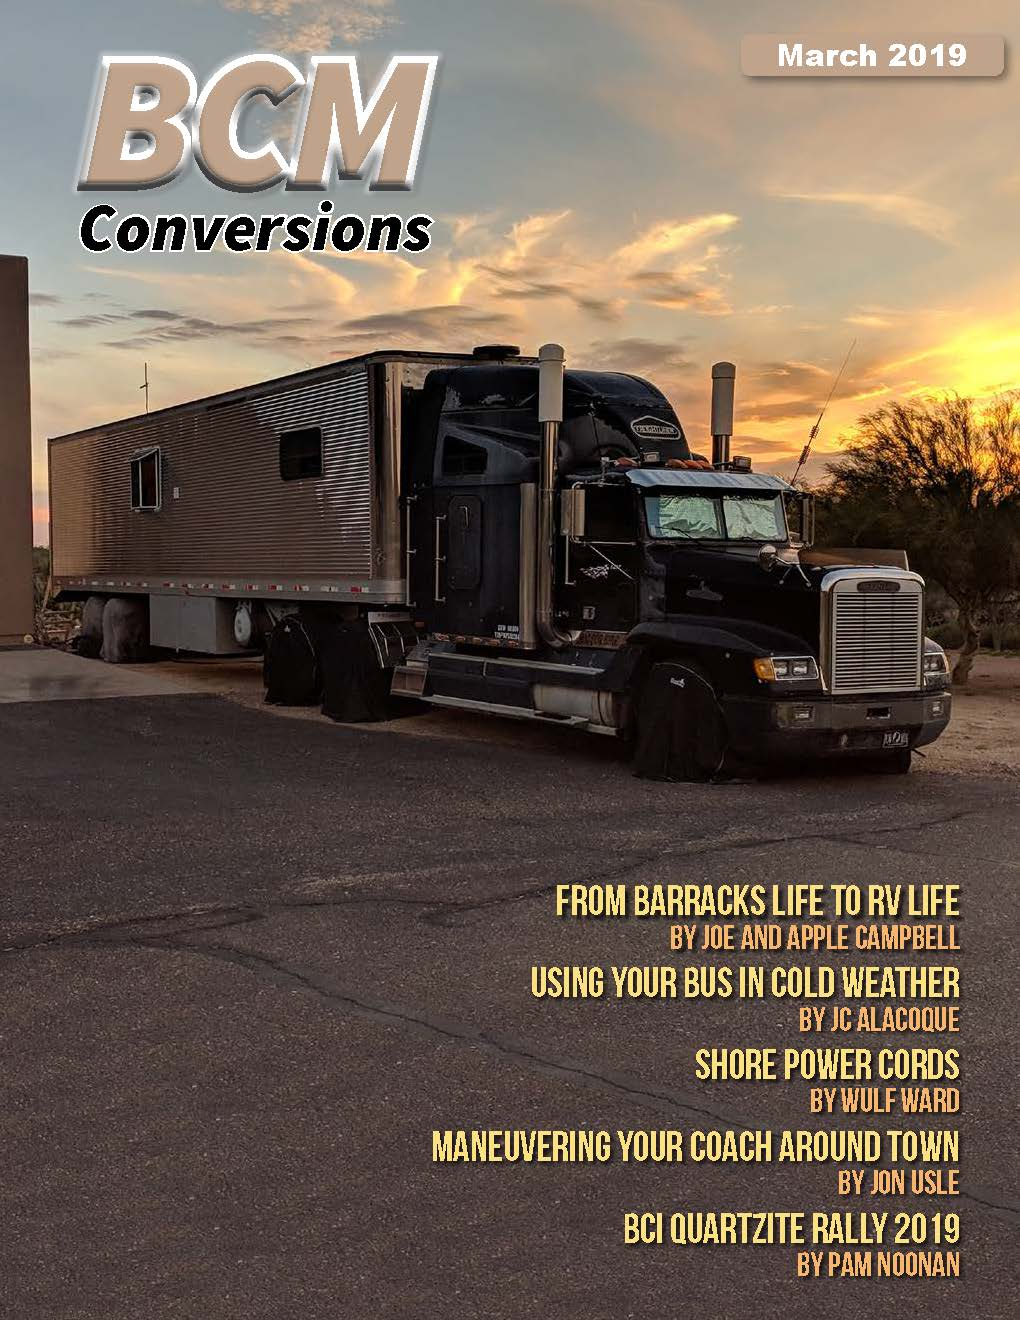 "<a href=""""><img class=""spu-open-10240"" src=""https://www.busconversionmagazine.com/wp-content/uploads/2019/03/March-Issue-2019-Toc-1.jpg""></a>"